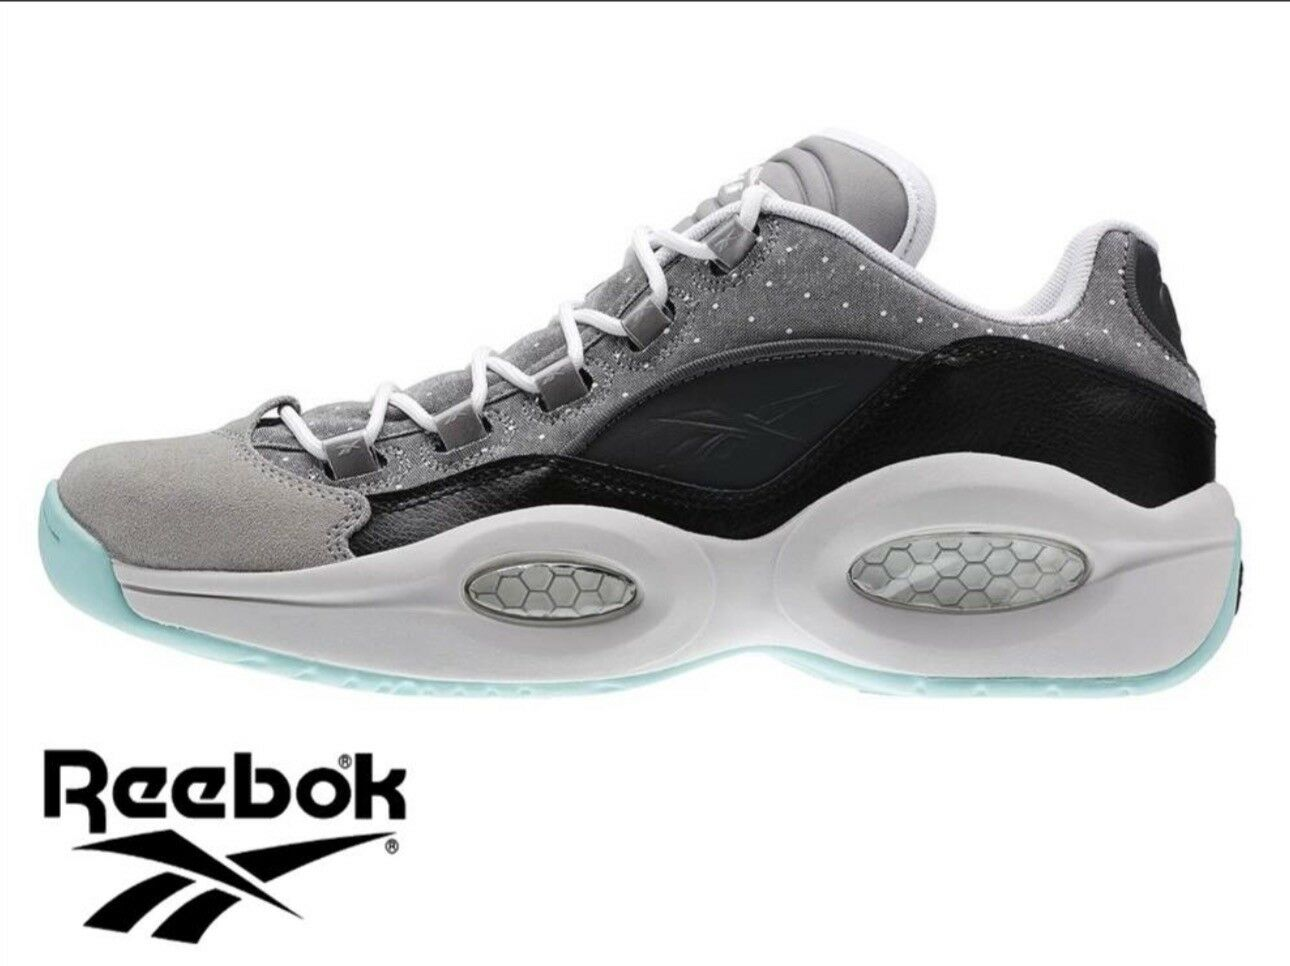 Reebok Question Low R13 Trainer, size Eur 41